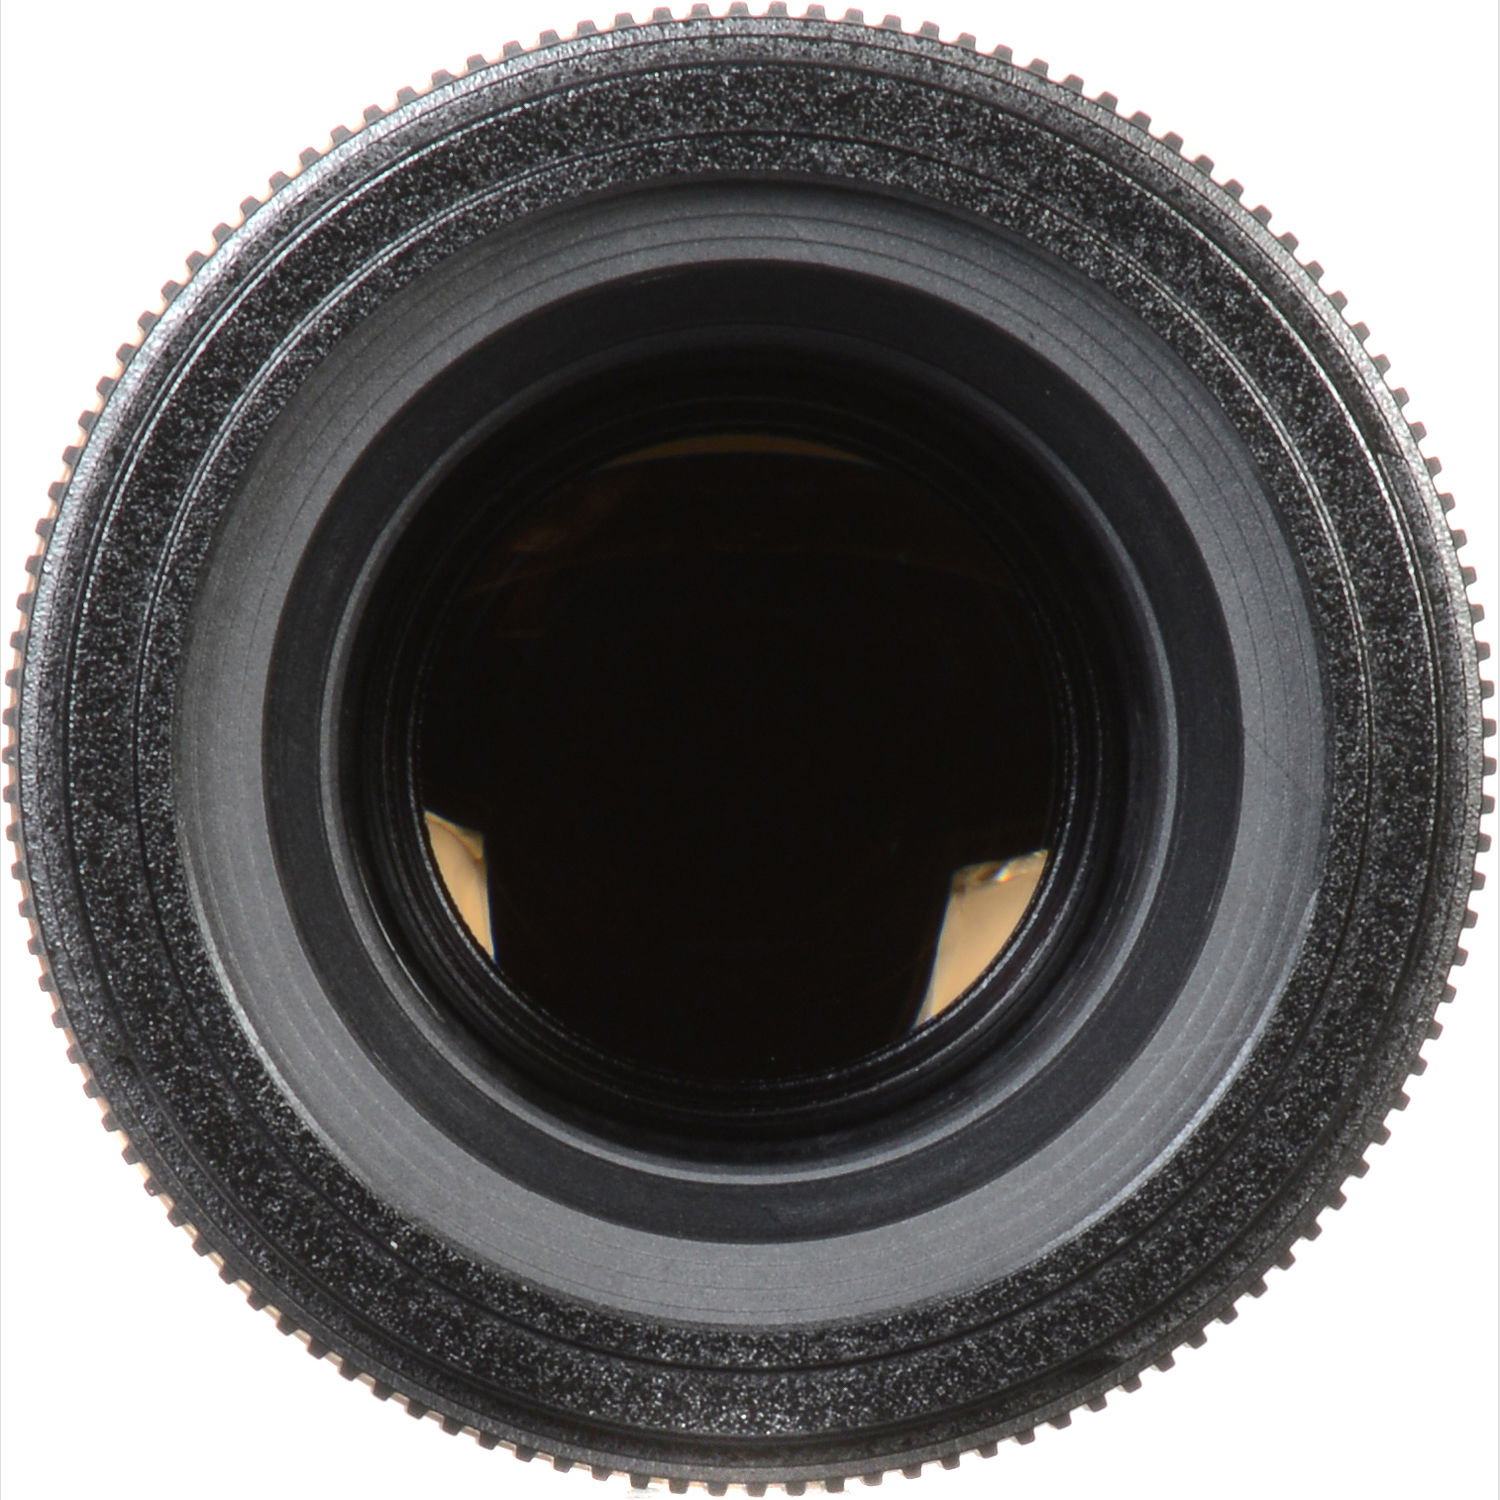 لنز تامرون SP 90mm f/2.8 Di Macro for Canon EOS